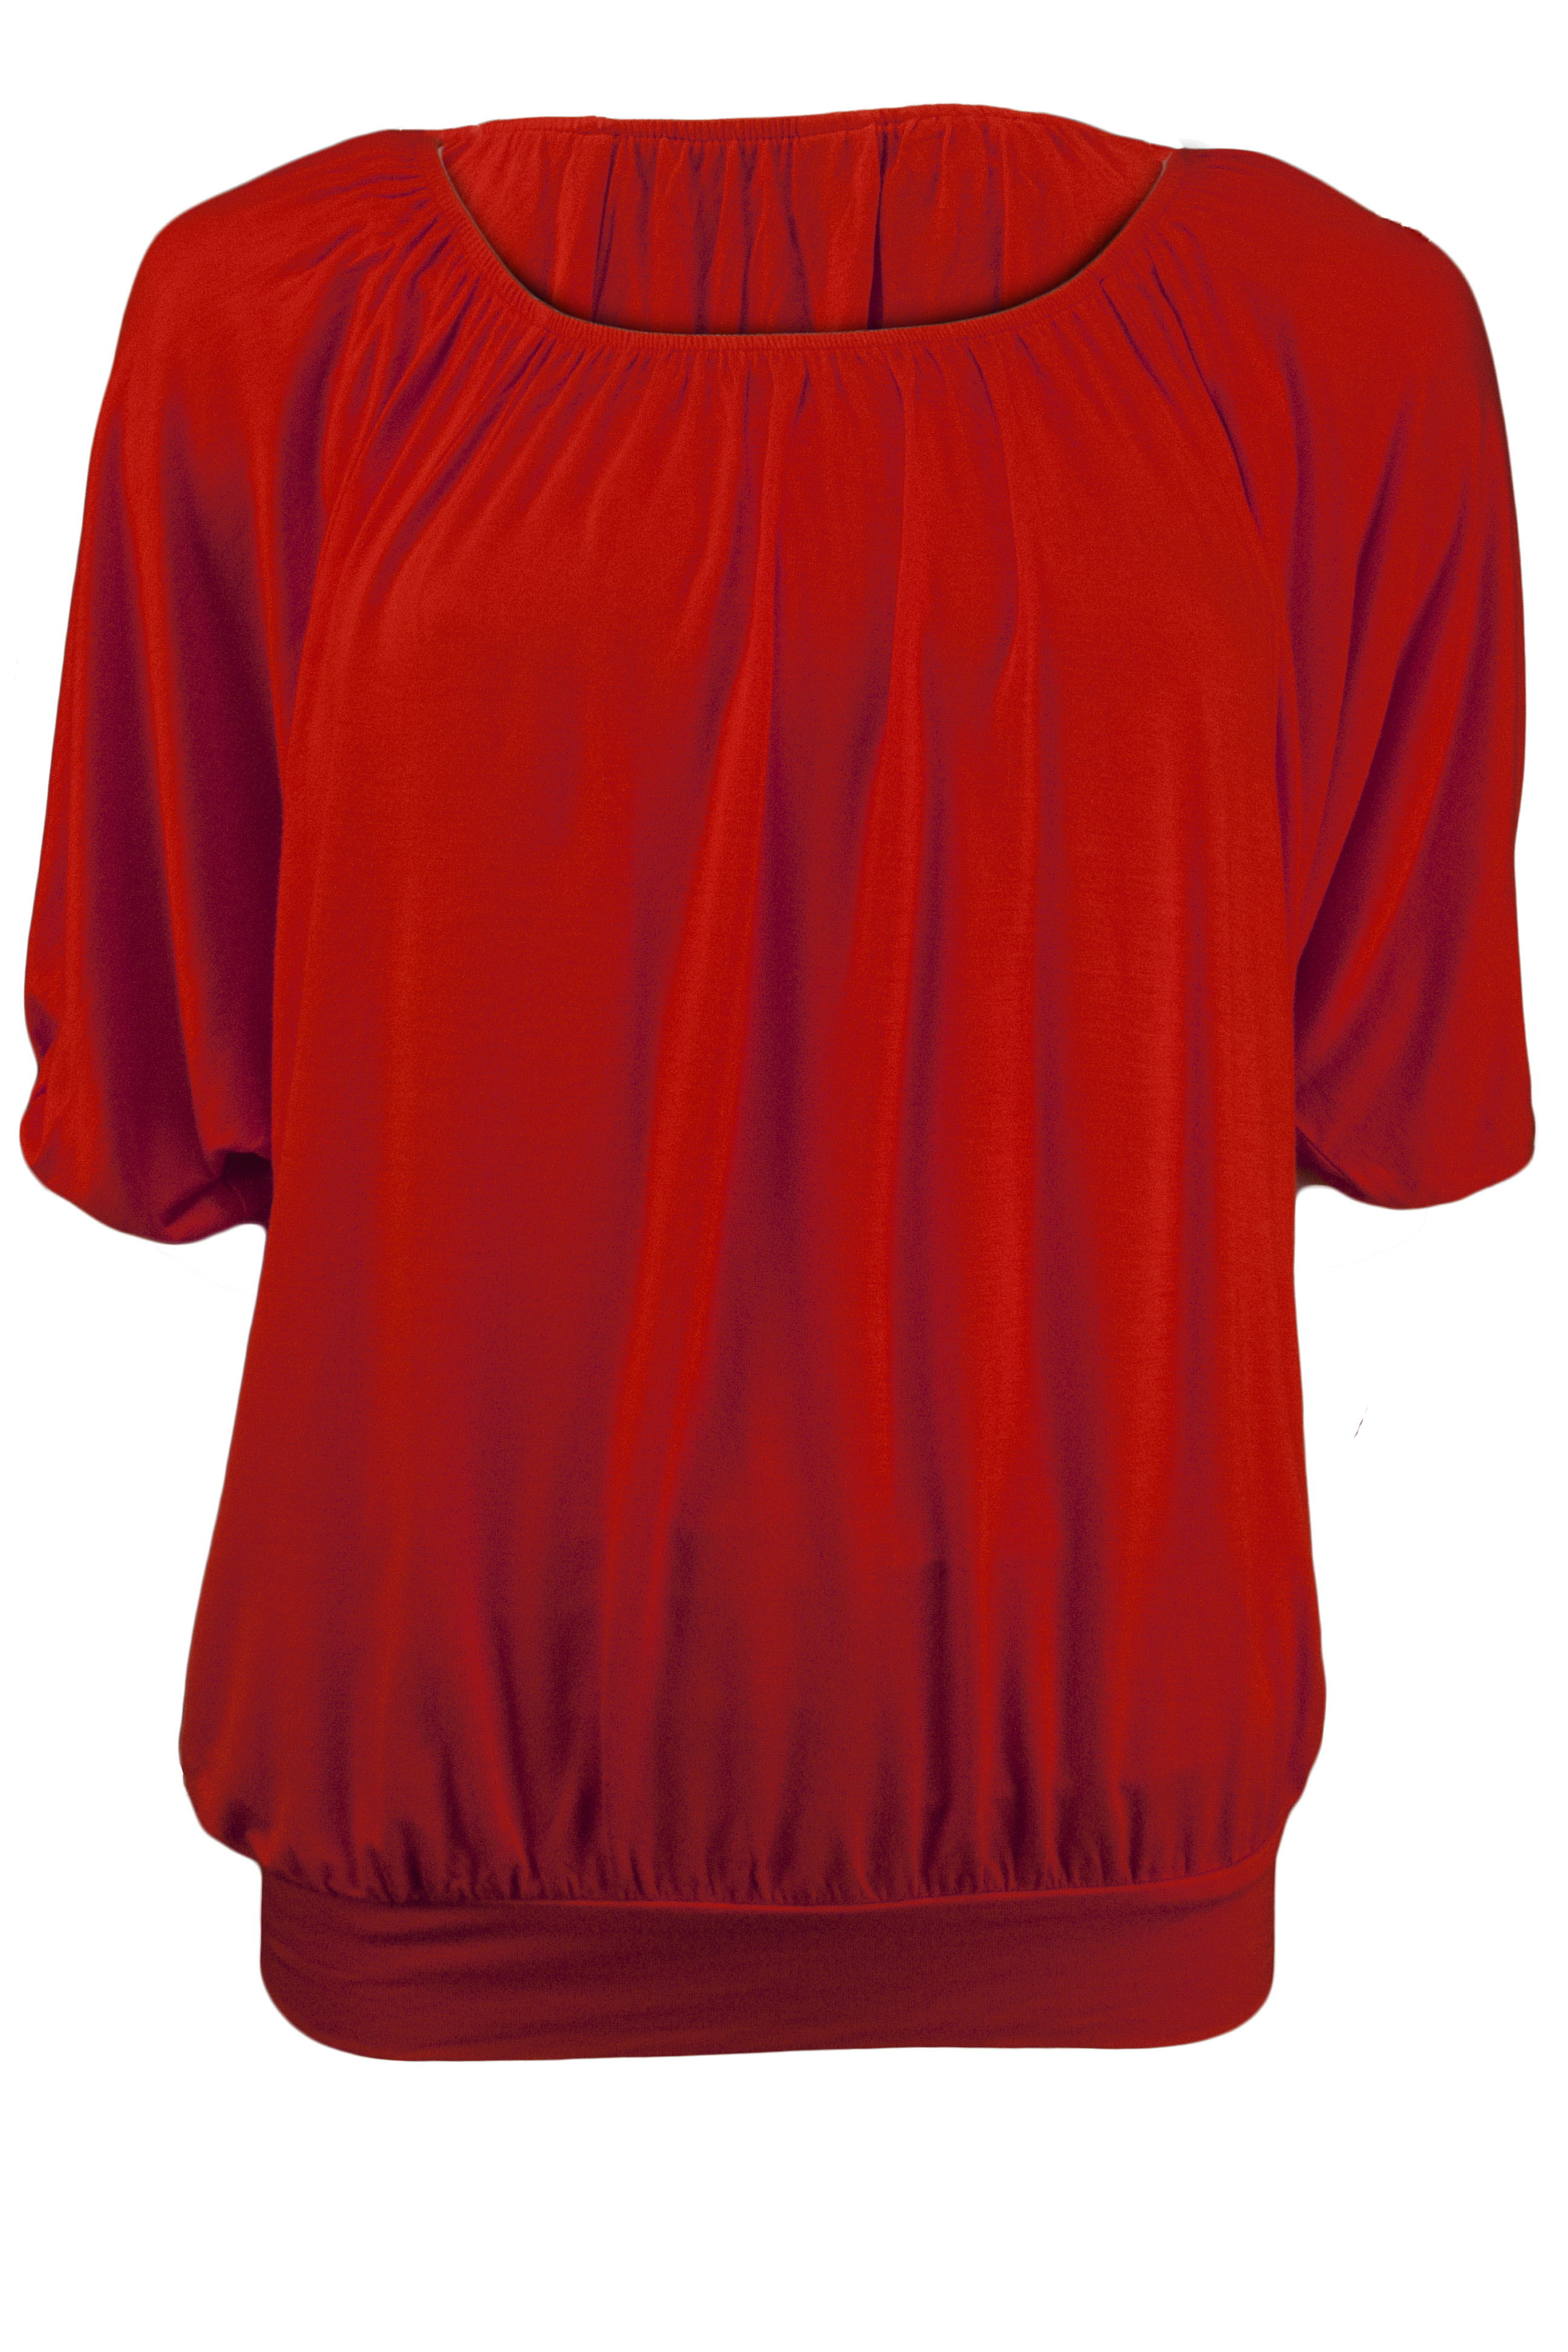 The Women's Plus Size Wrap Back T-Shirt from C9 Champion flatters with a faux wrap and wide bottom hem. Wicking fabric that stretches and is breathable makes this .